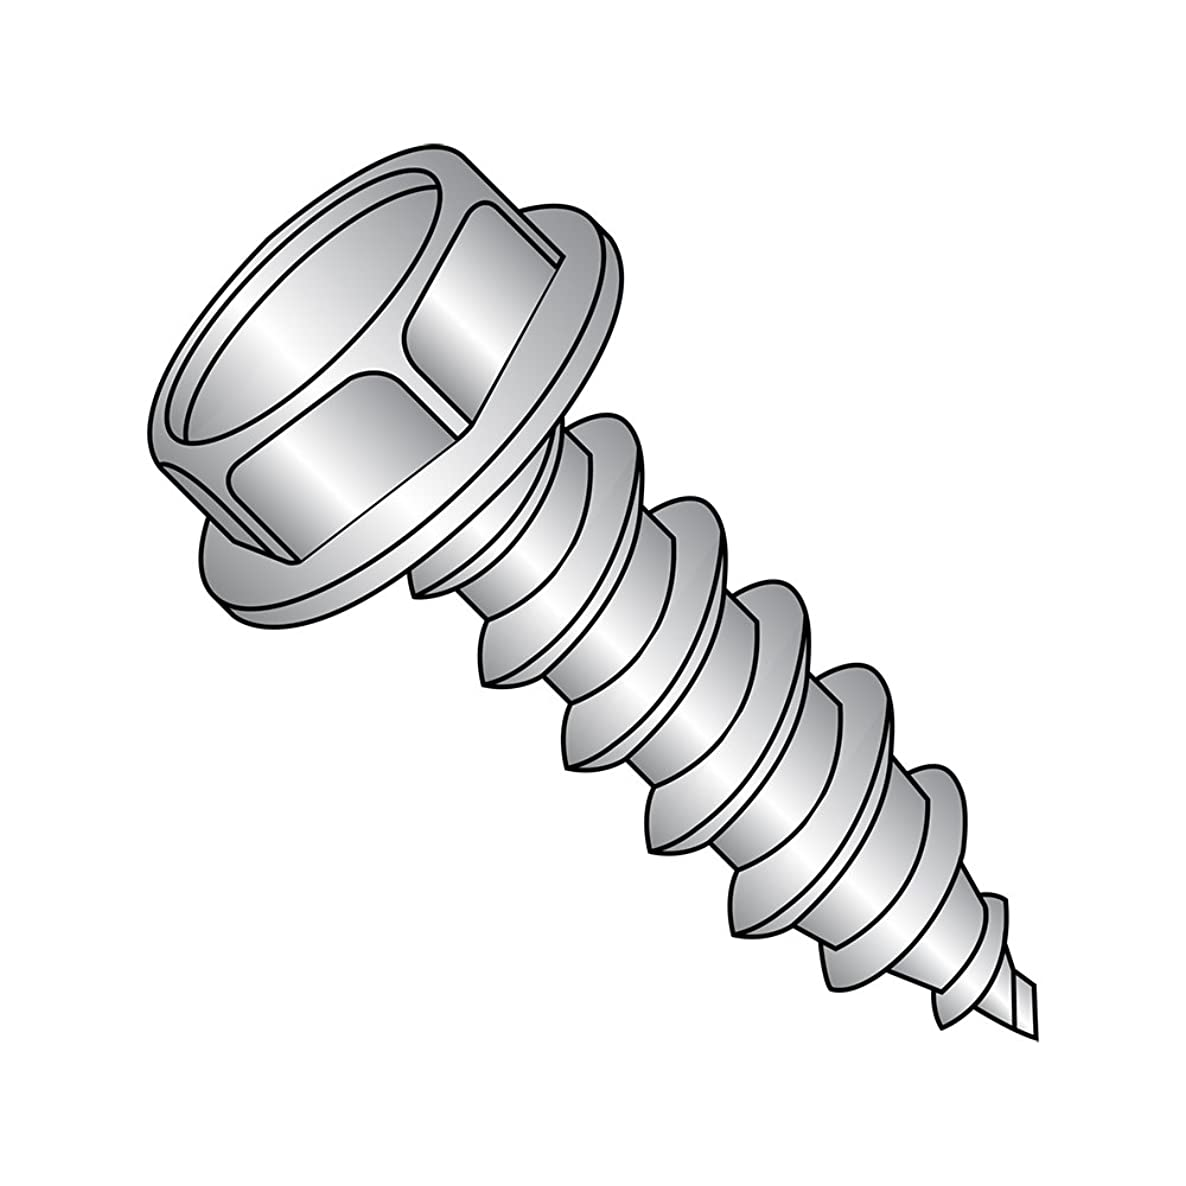 18-8 Stainless Steel Sheet Metal Screw, Plain Finish, Hex Washer Head, Hex Drive, Type A, #6-18 Thread Size, 3/8